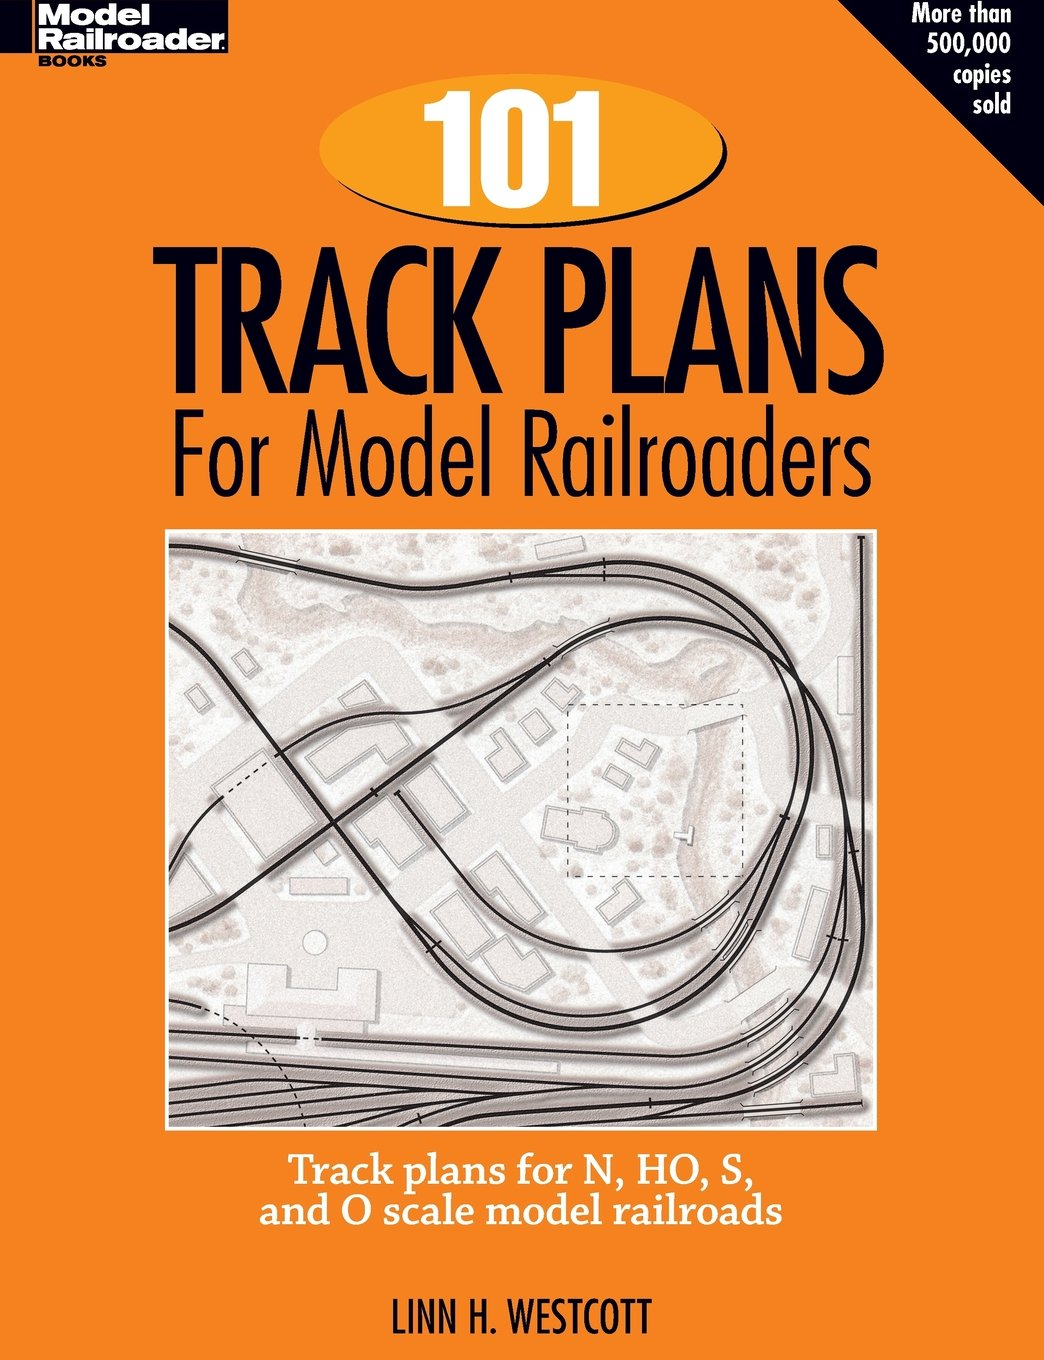 One Hundred And Track Plans For Model Railroaders Fashion Railroading Electronics That Train Electronic Railroad Handbook No 3 Linn Westcott 9780890245125 Books